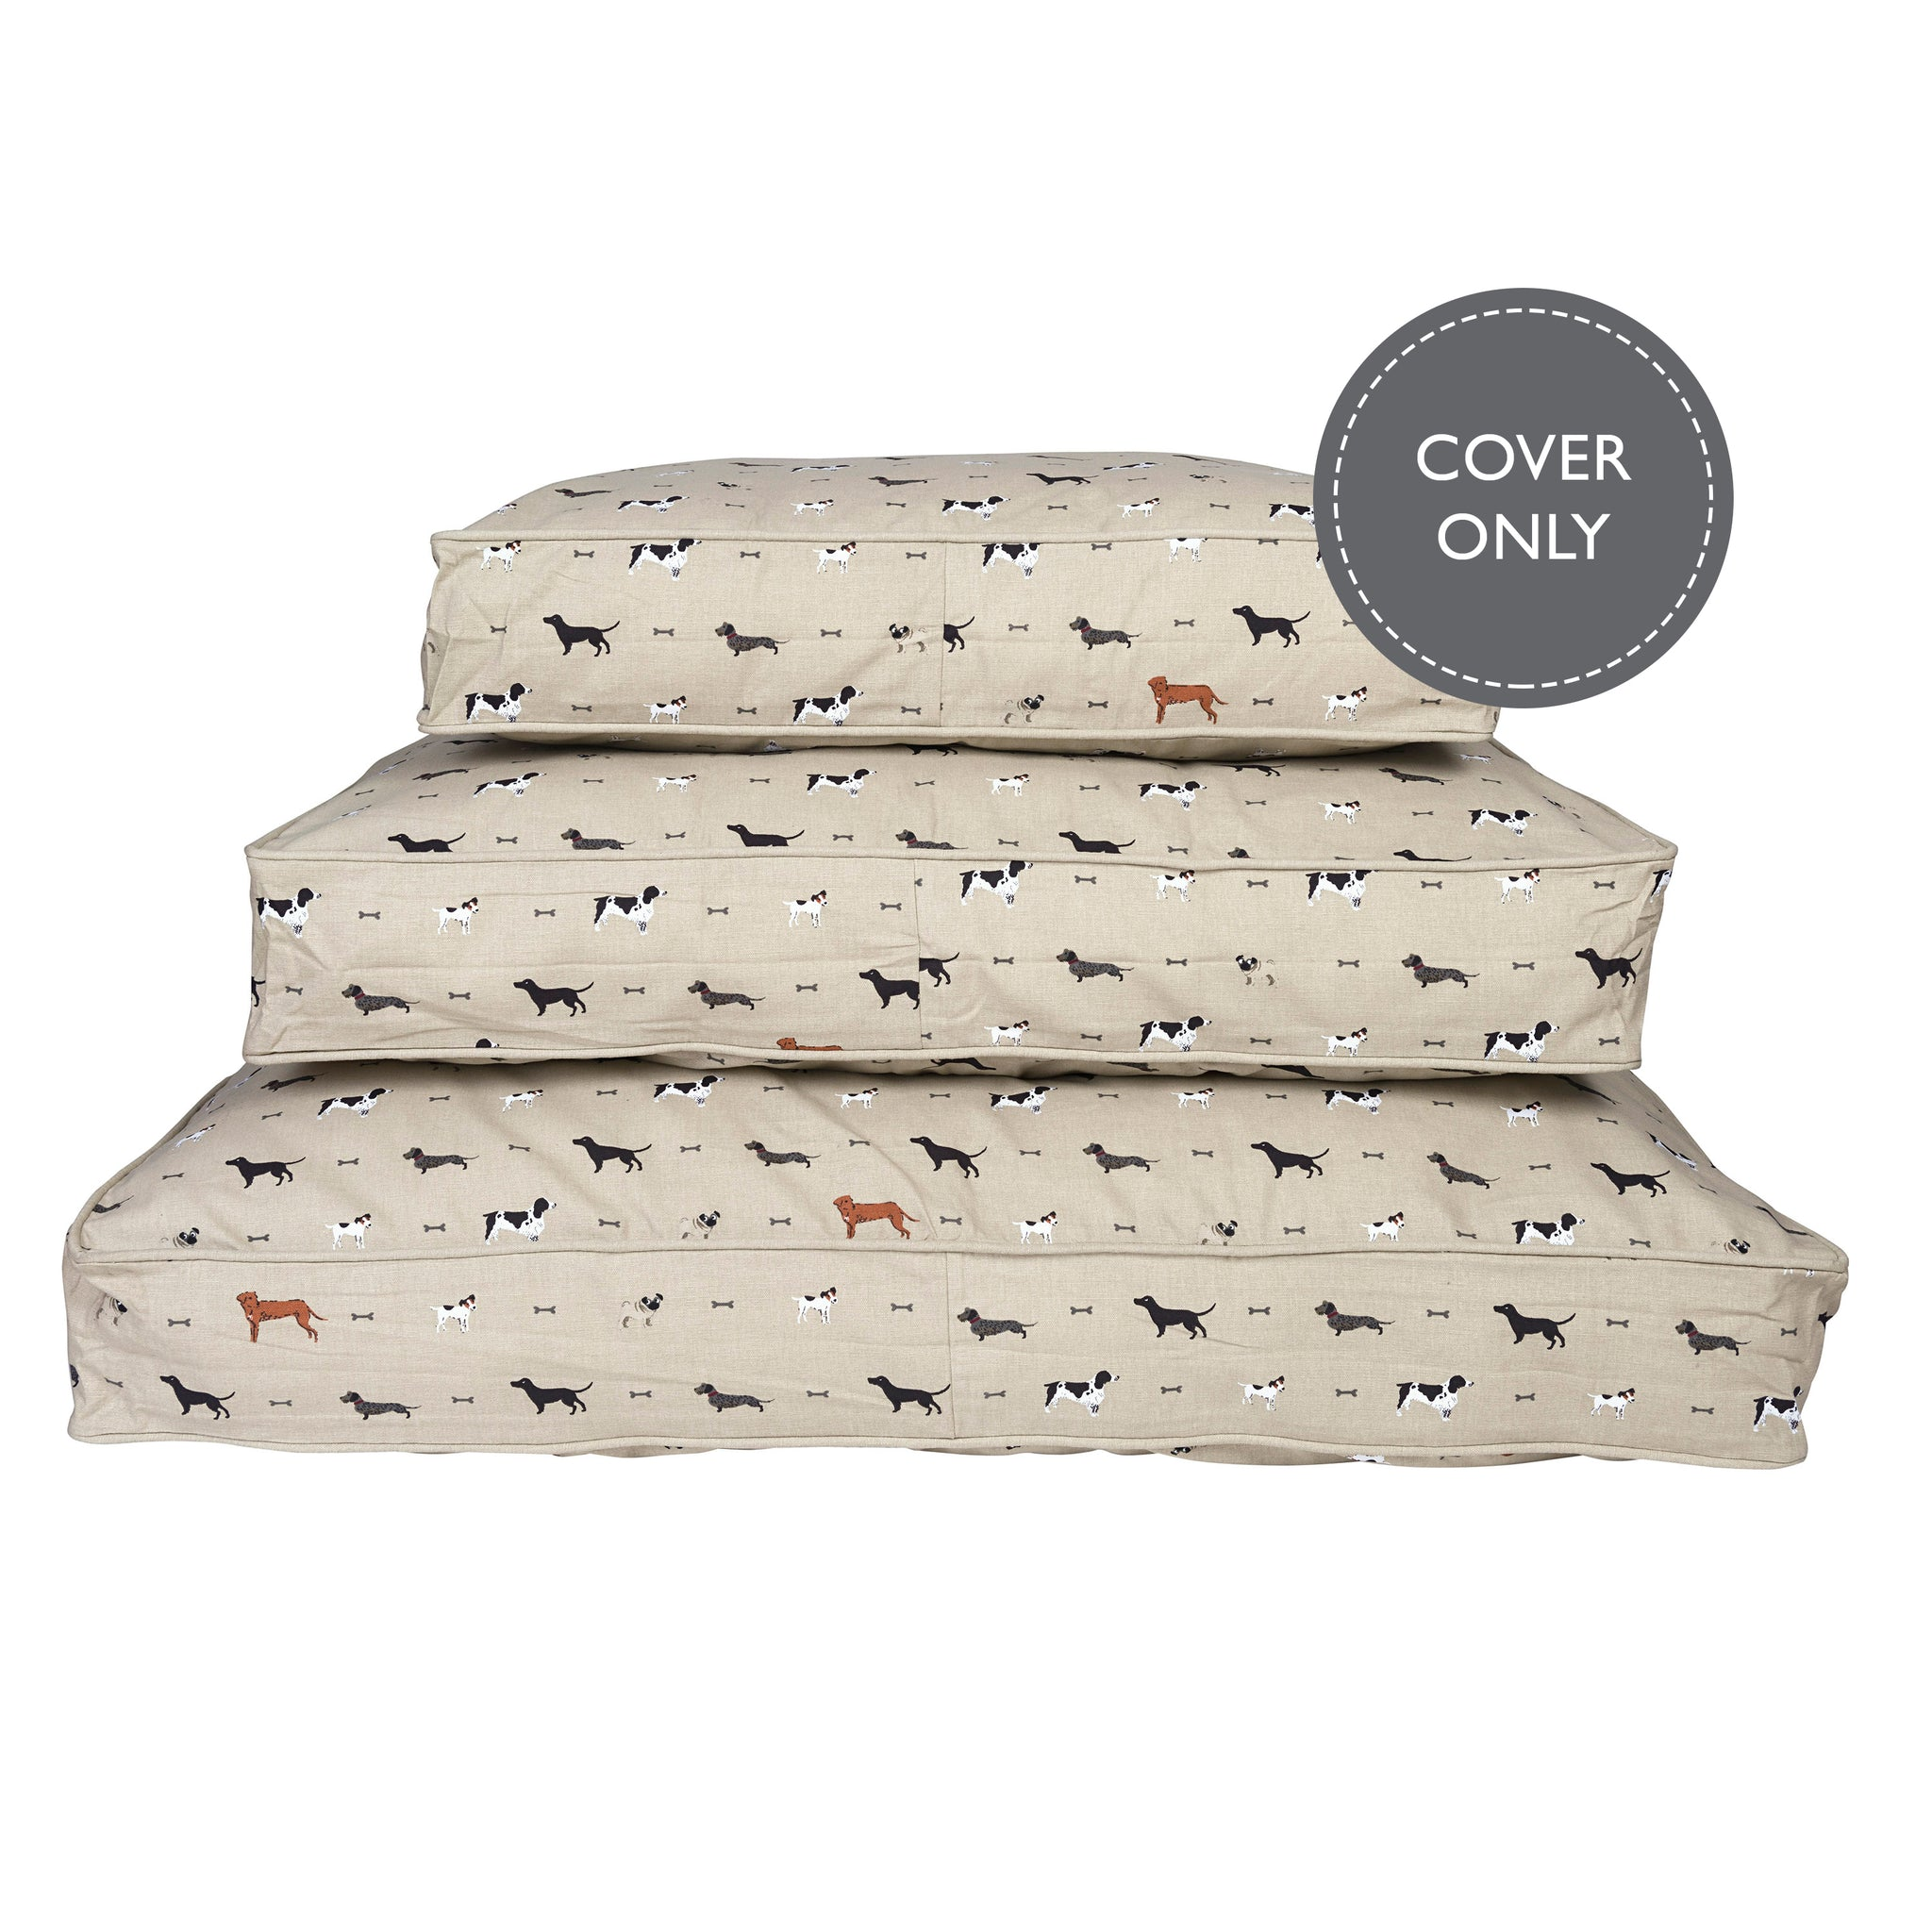 Woof pet mattress cover by Sophie Allport